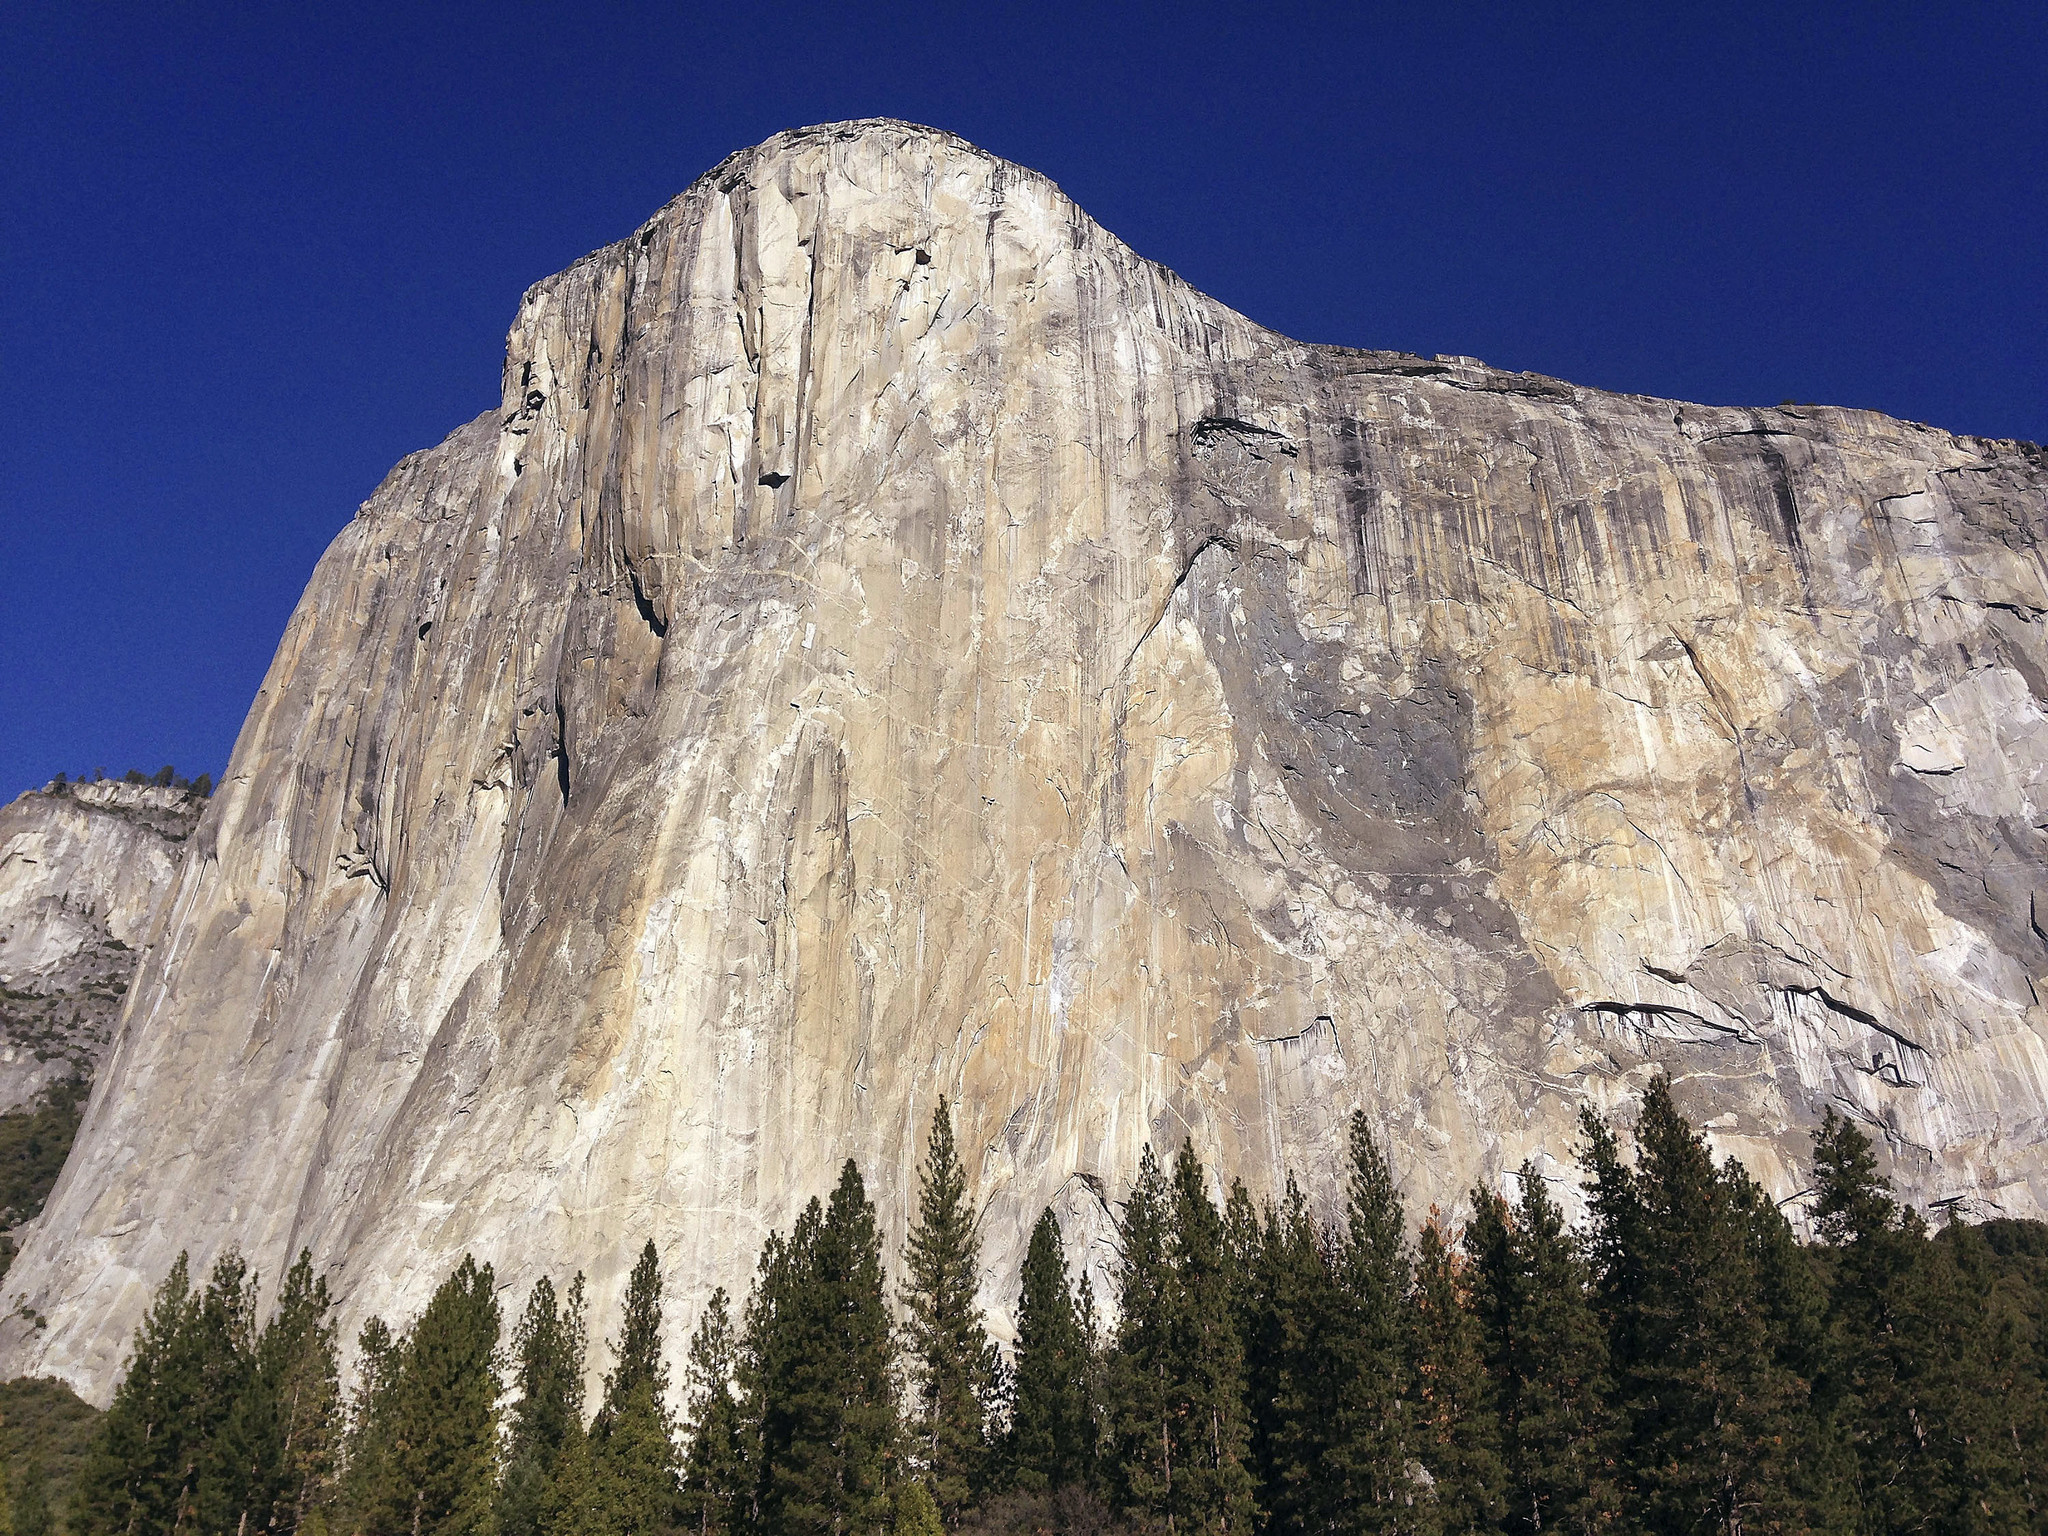 'It's like walking up glass': Solo climber becomes first to scale Yosemite's El Capitan without ropes